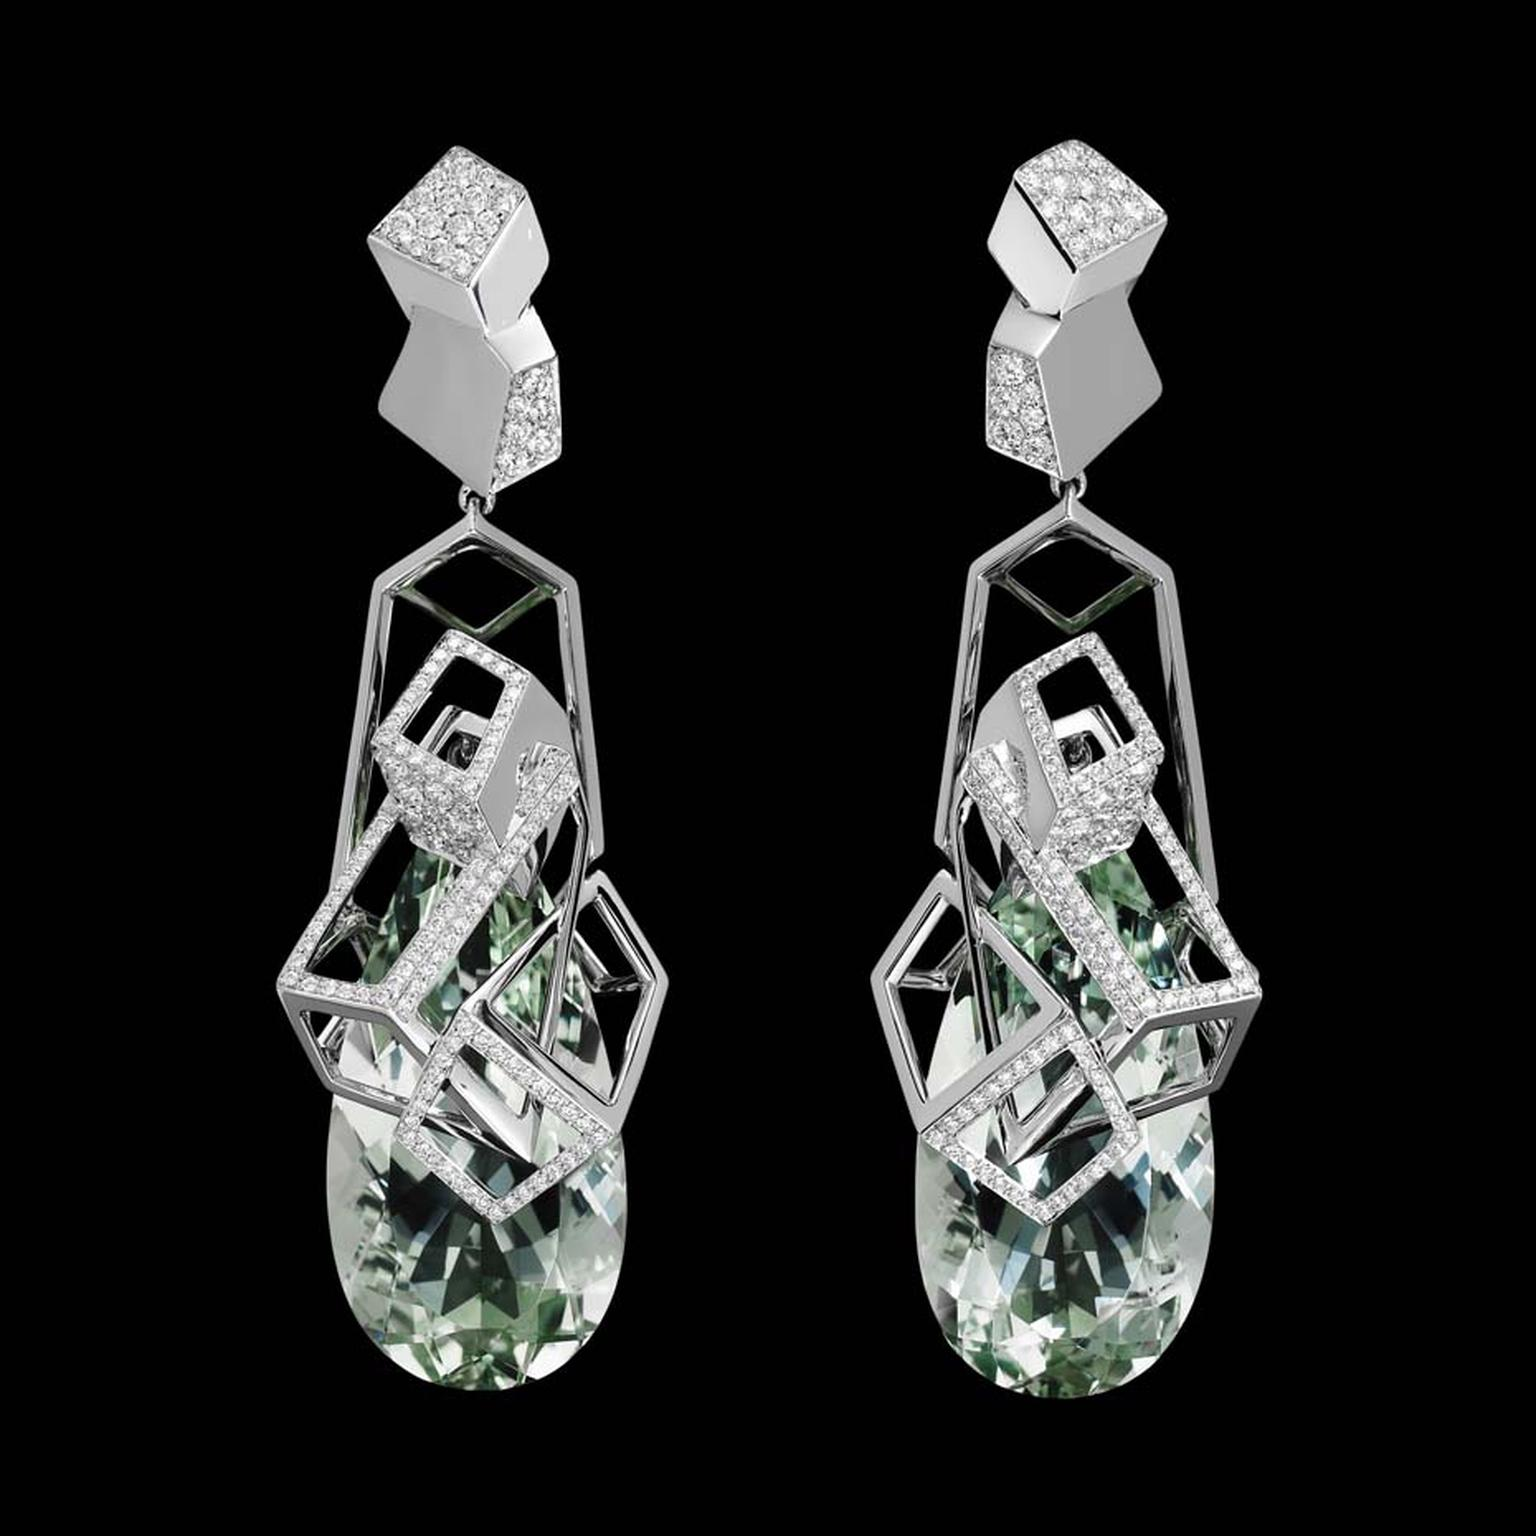 Lorenz Baumer Cubistes earrings